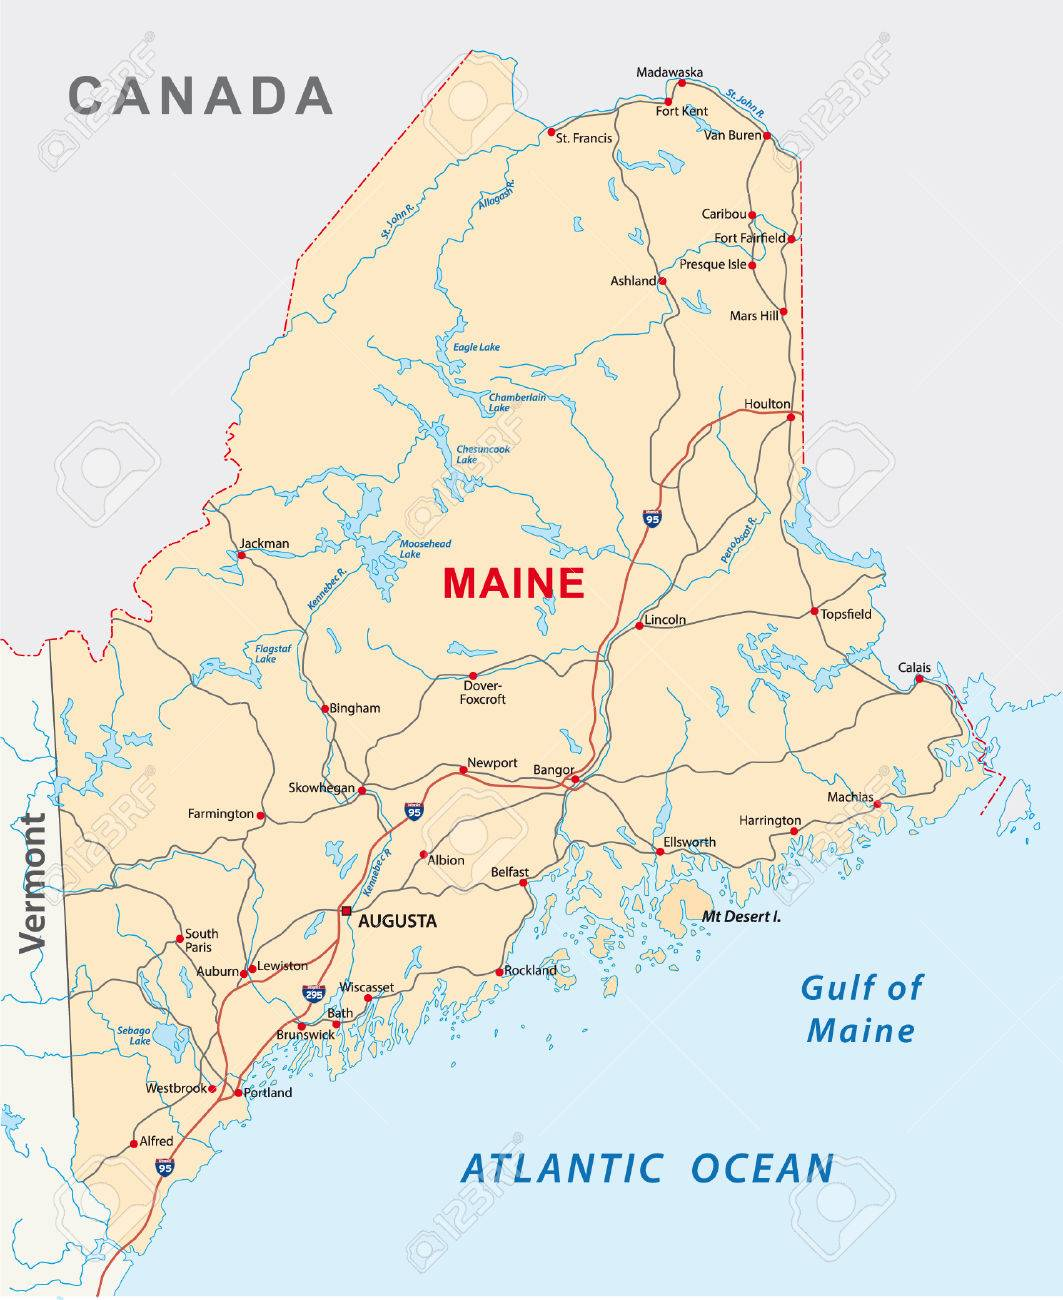 maine road map on maine map directions, east west highway maine map, maine atlas map, bar harbor maine map, maine university logo, acadia national park map, maine campus map, maine toll road, maine city map, maine interstate map, maine narrow gauge railroad map, lewiston maine map, maine zone map, maine hotel map, rockland maine map, route 1 maine map, forts of maine map, portland maine map, maine map of usa showing, maine road atlas,